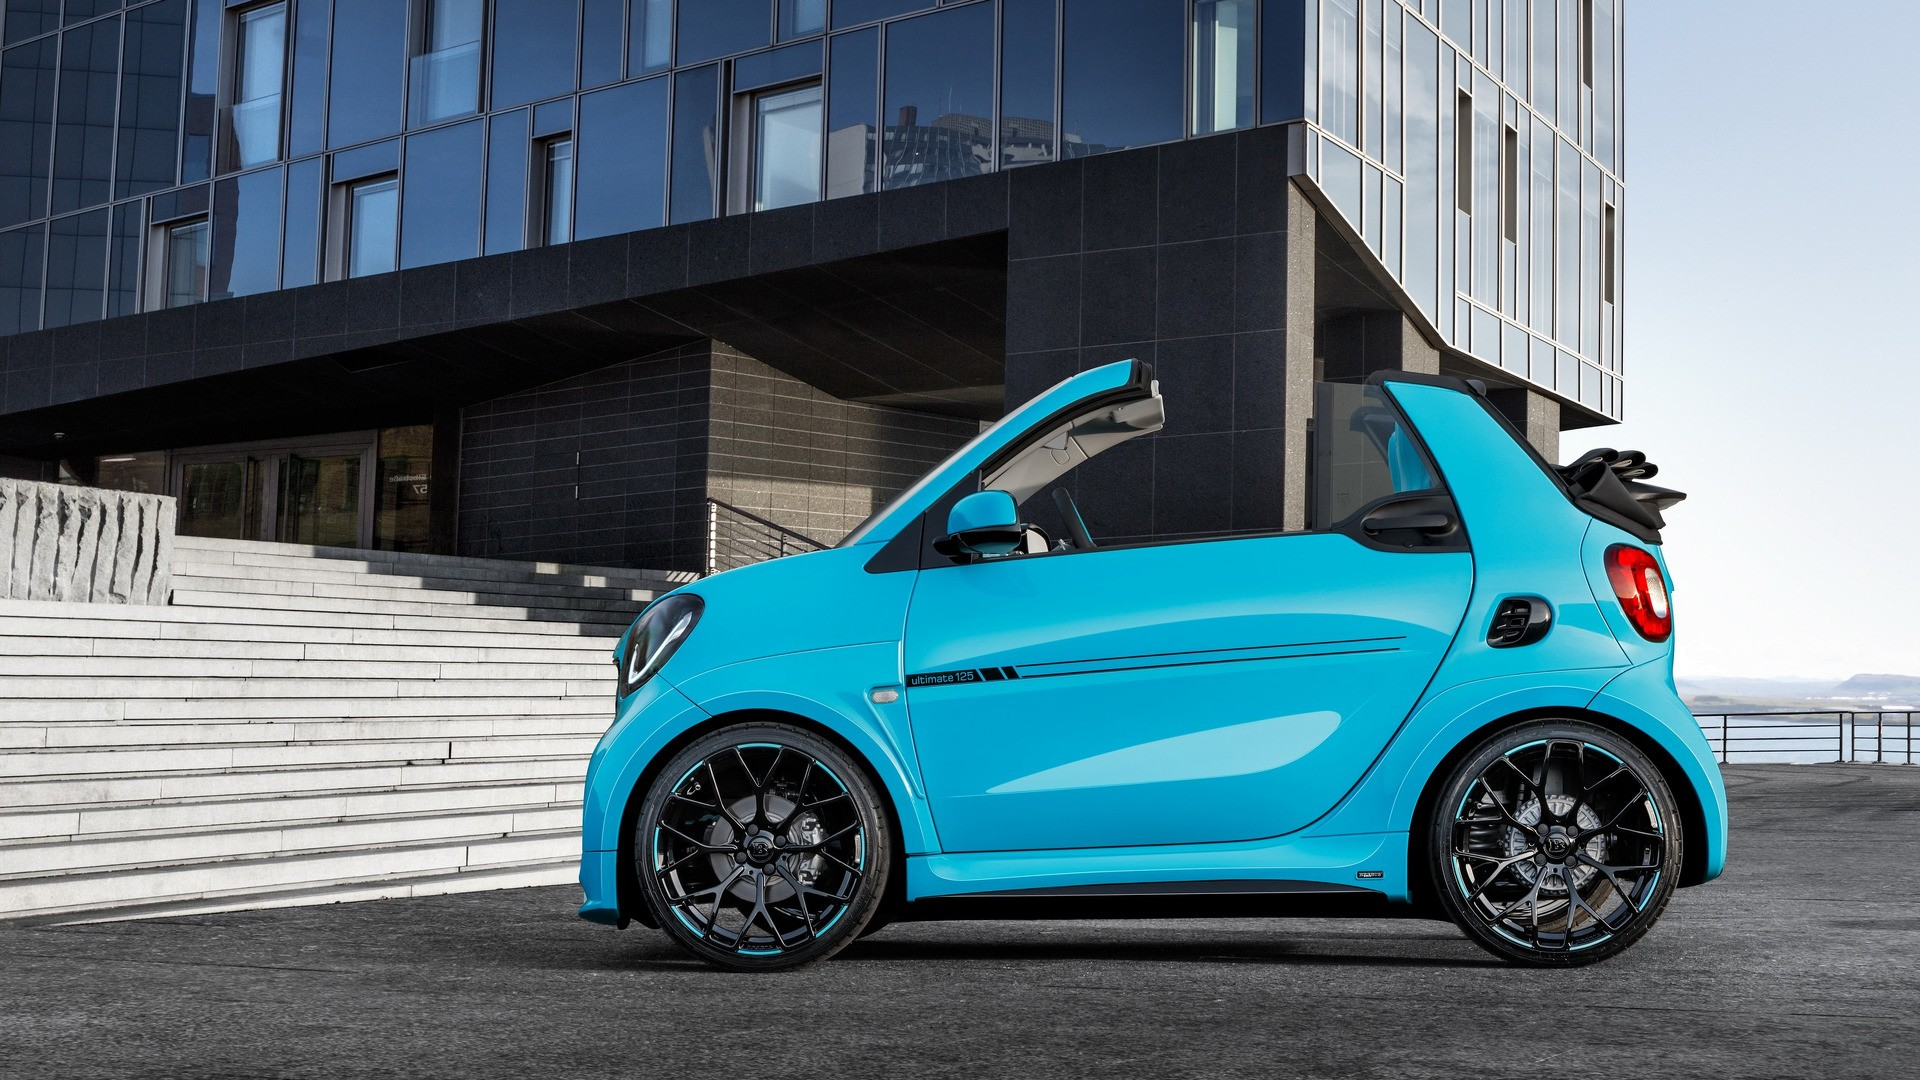 brabus reveals amazing 125 hp tuned smart fortwo cabrio. Black Bedroom Furniture Sets. Home Design Ideas